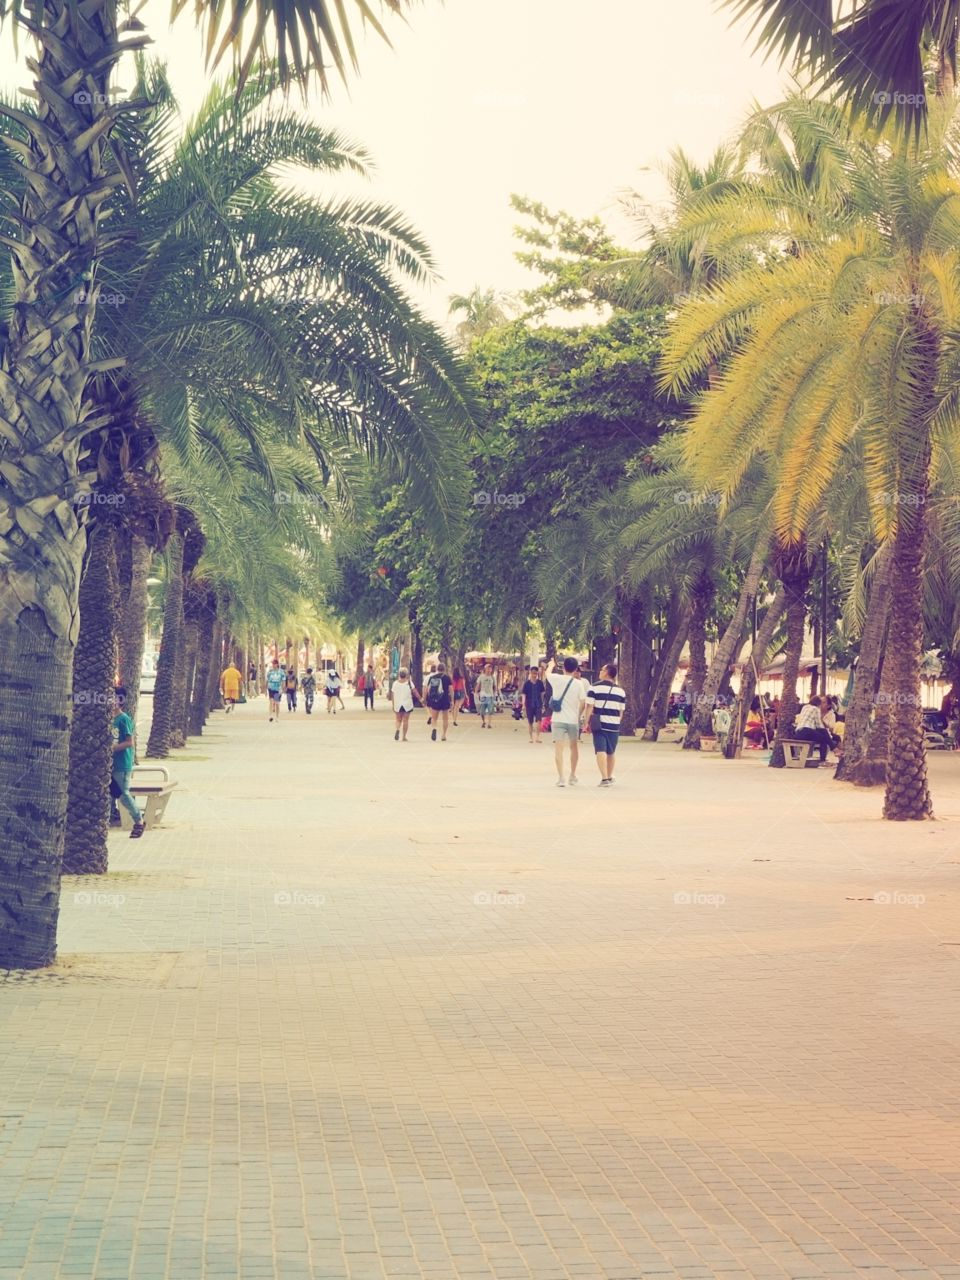 People walking on the beach walk surrounded with green palm trees.